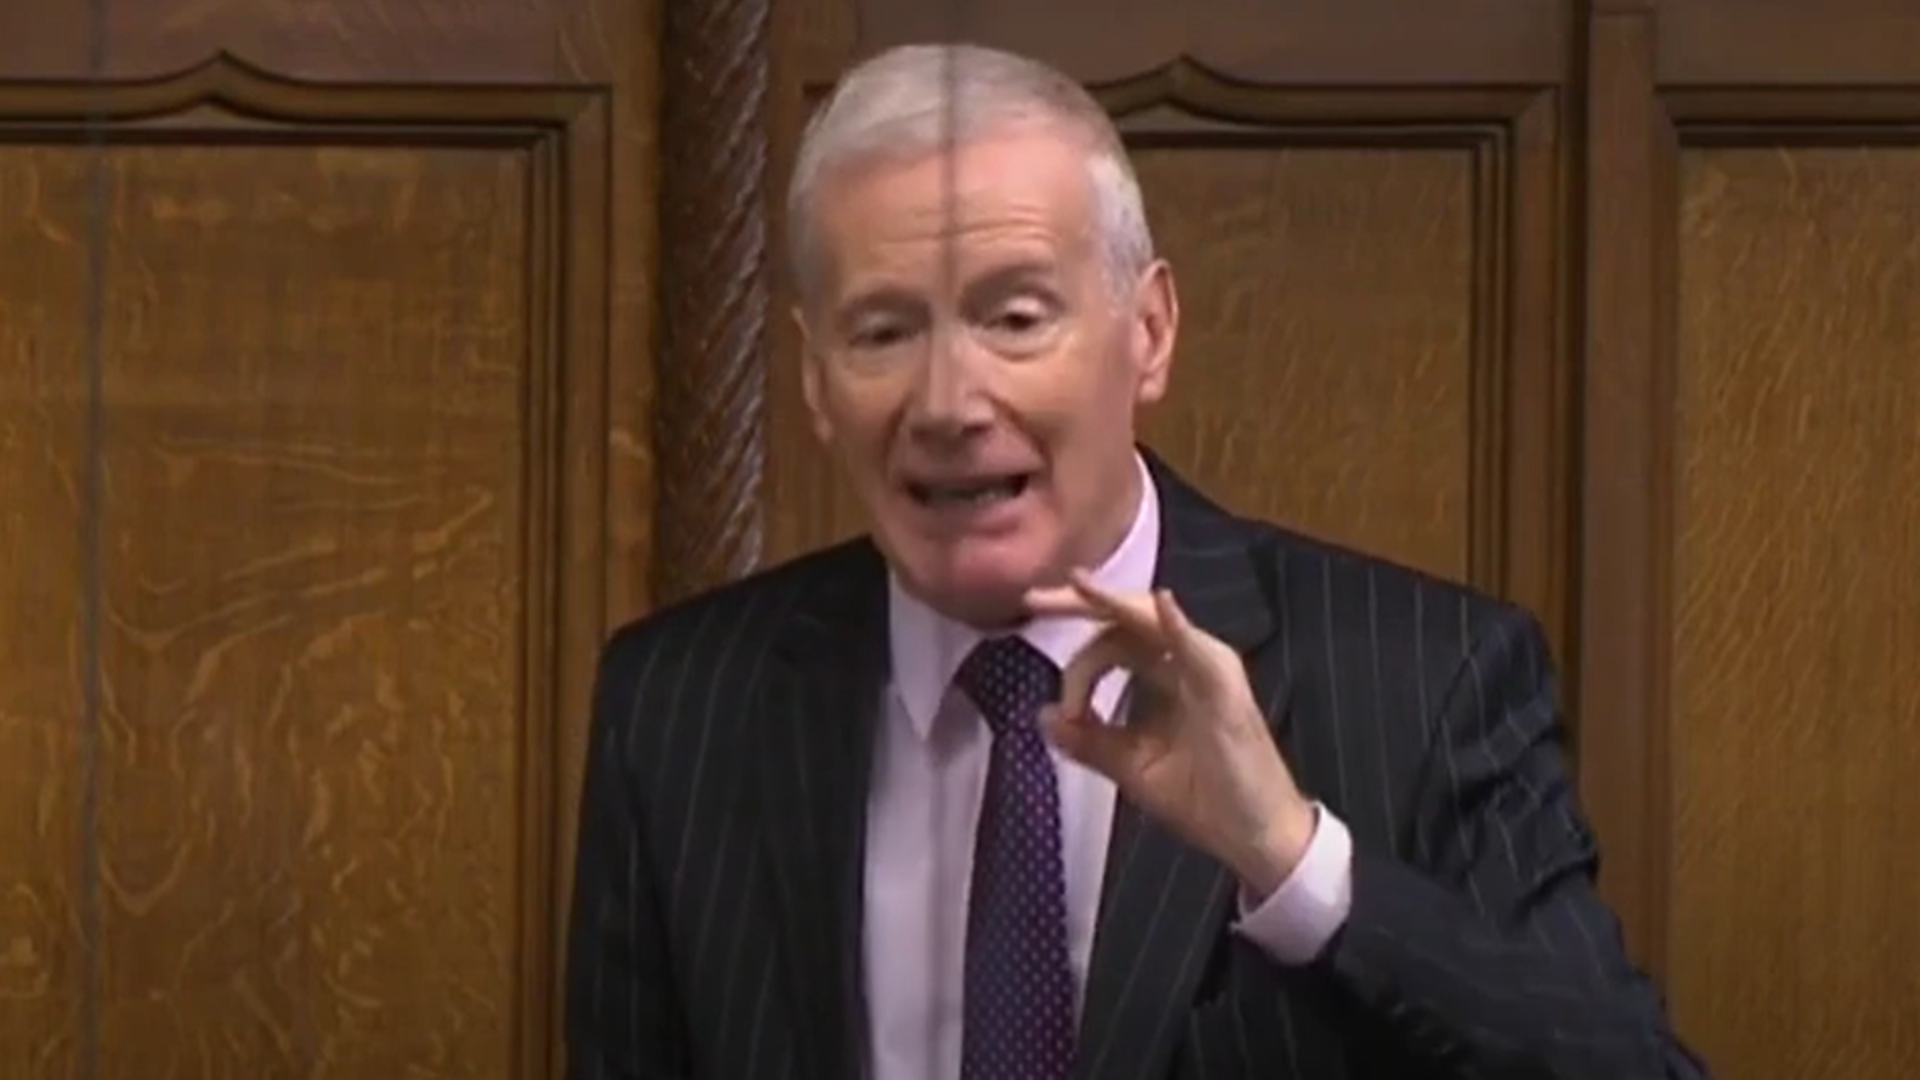 Gregory Campbell in the House of Commons - Credit: Parliament Live